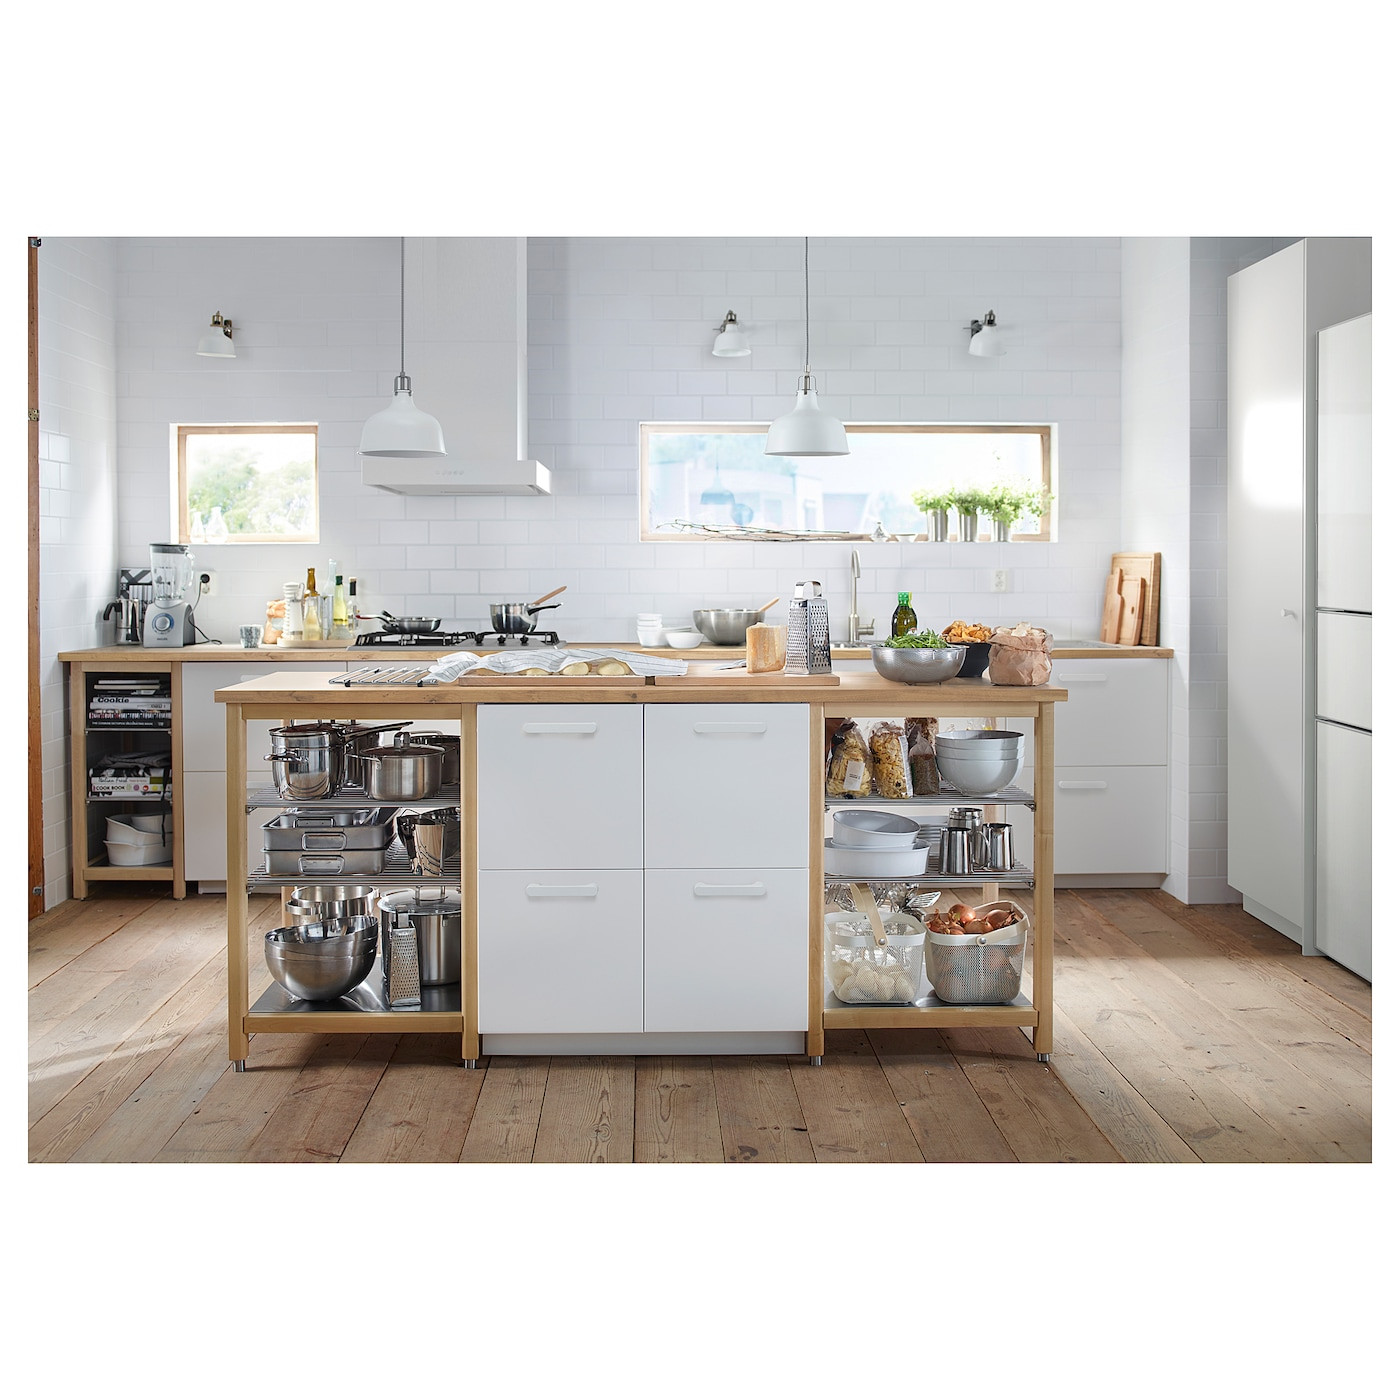 IKEA KARLBY worktop 25 year guarantee. Read about the terms in the guarantee brochure.